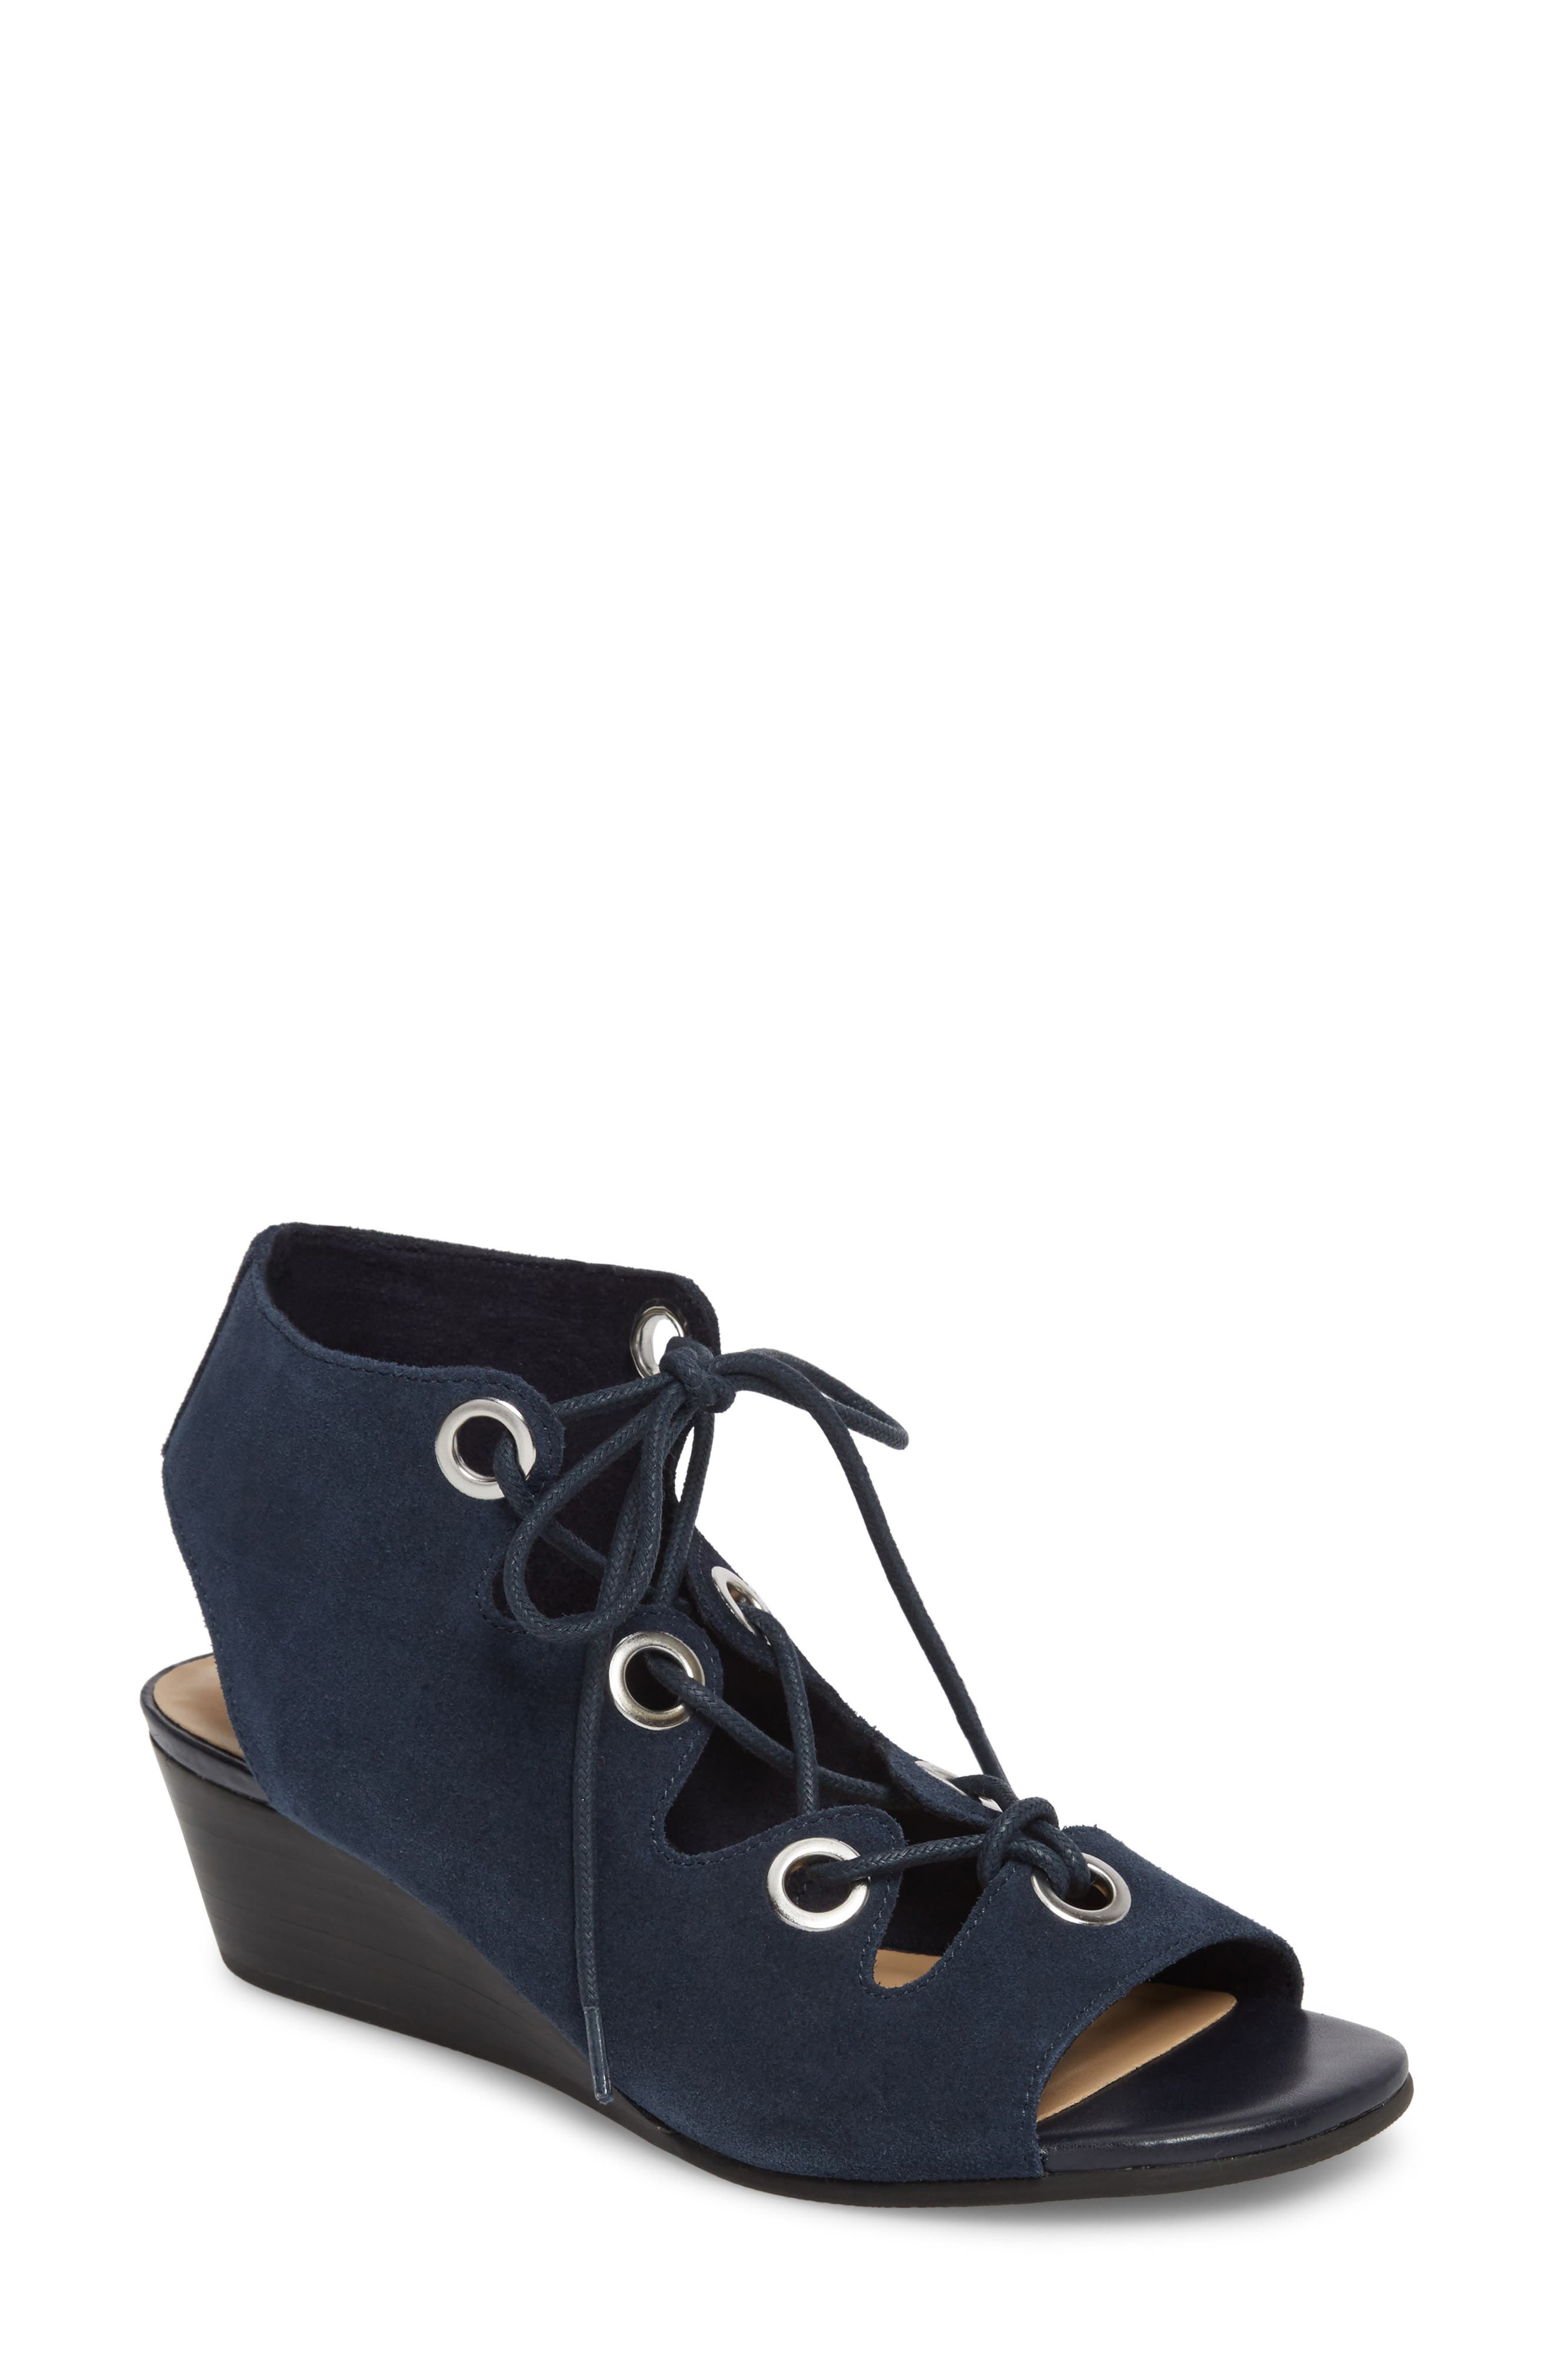 Ingrid Lace-Up Sandal,                             Main thumbnail 1, color,                             Navy Suede